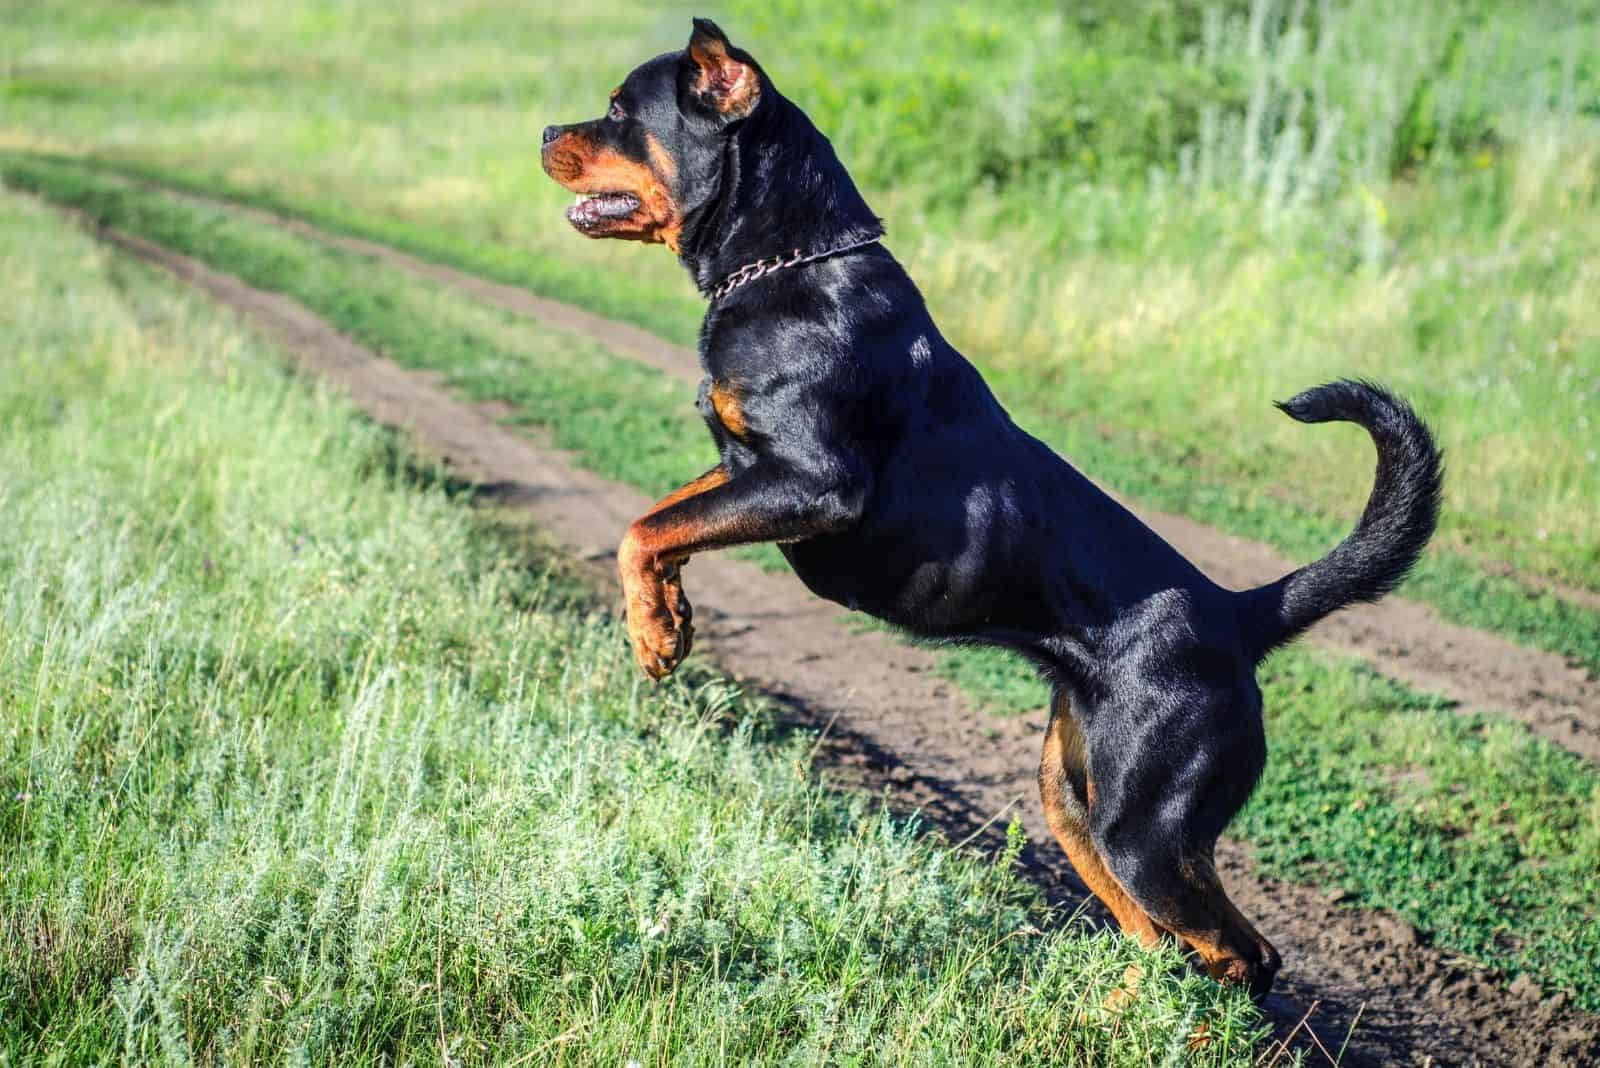 angry dog rottweiler going up a grassland outdoors